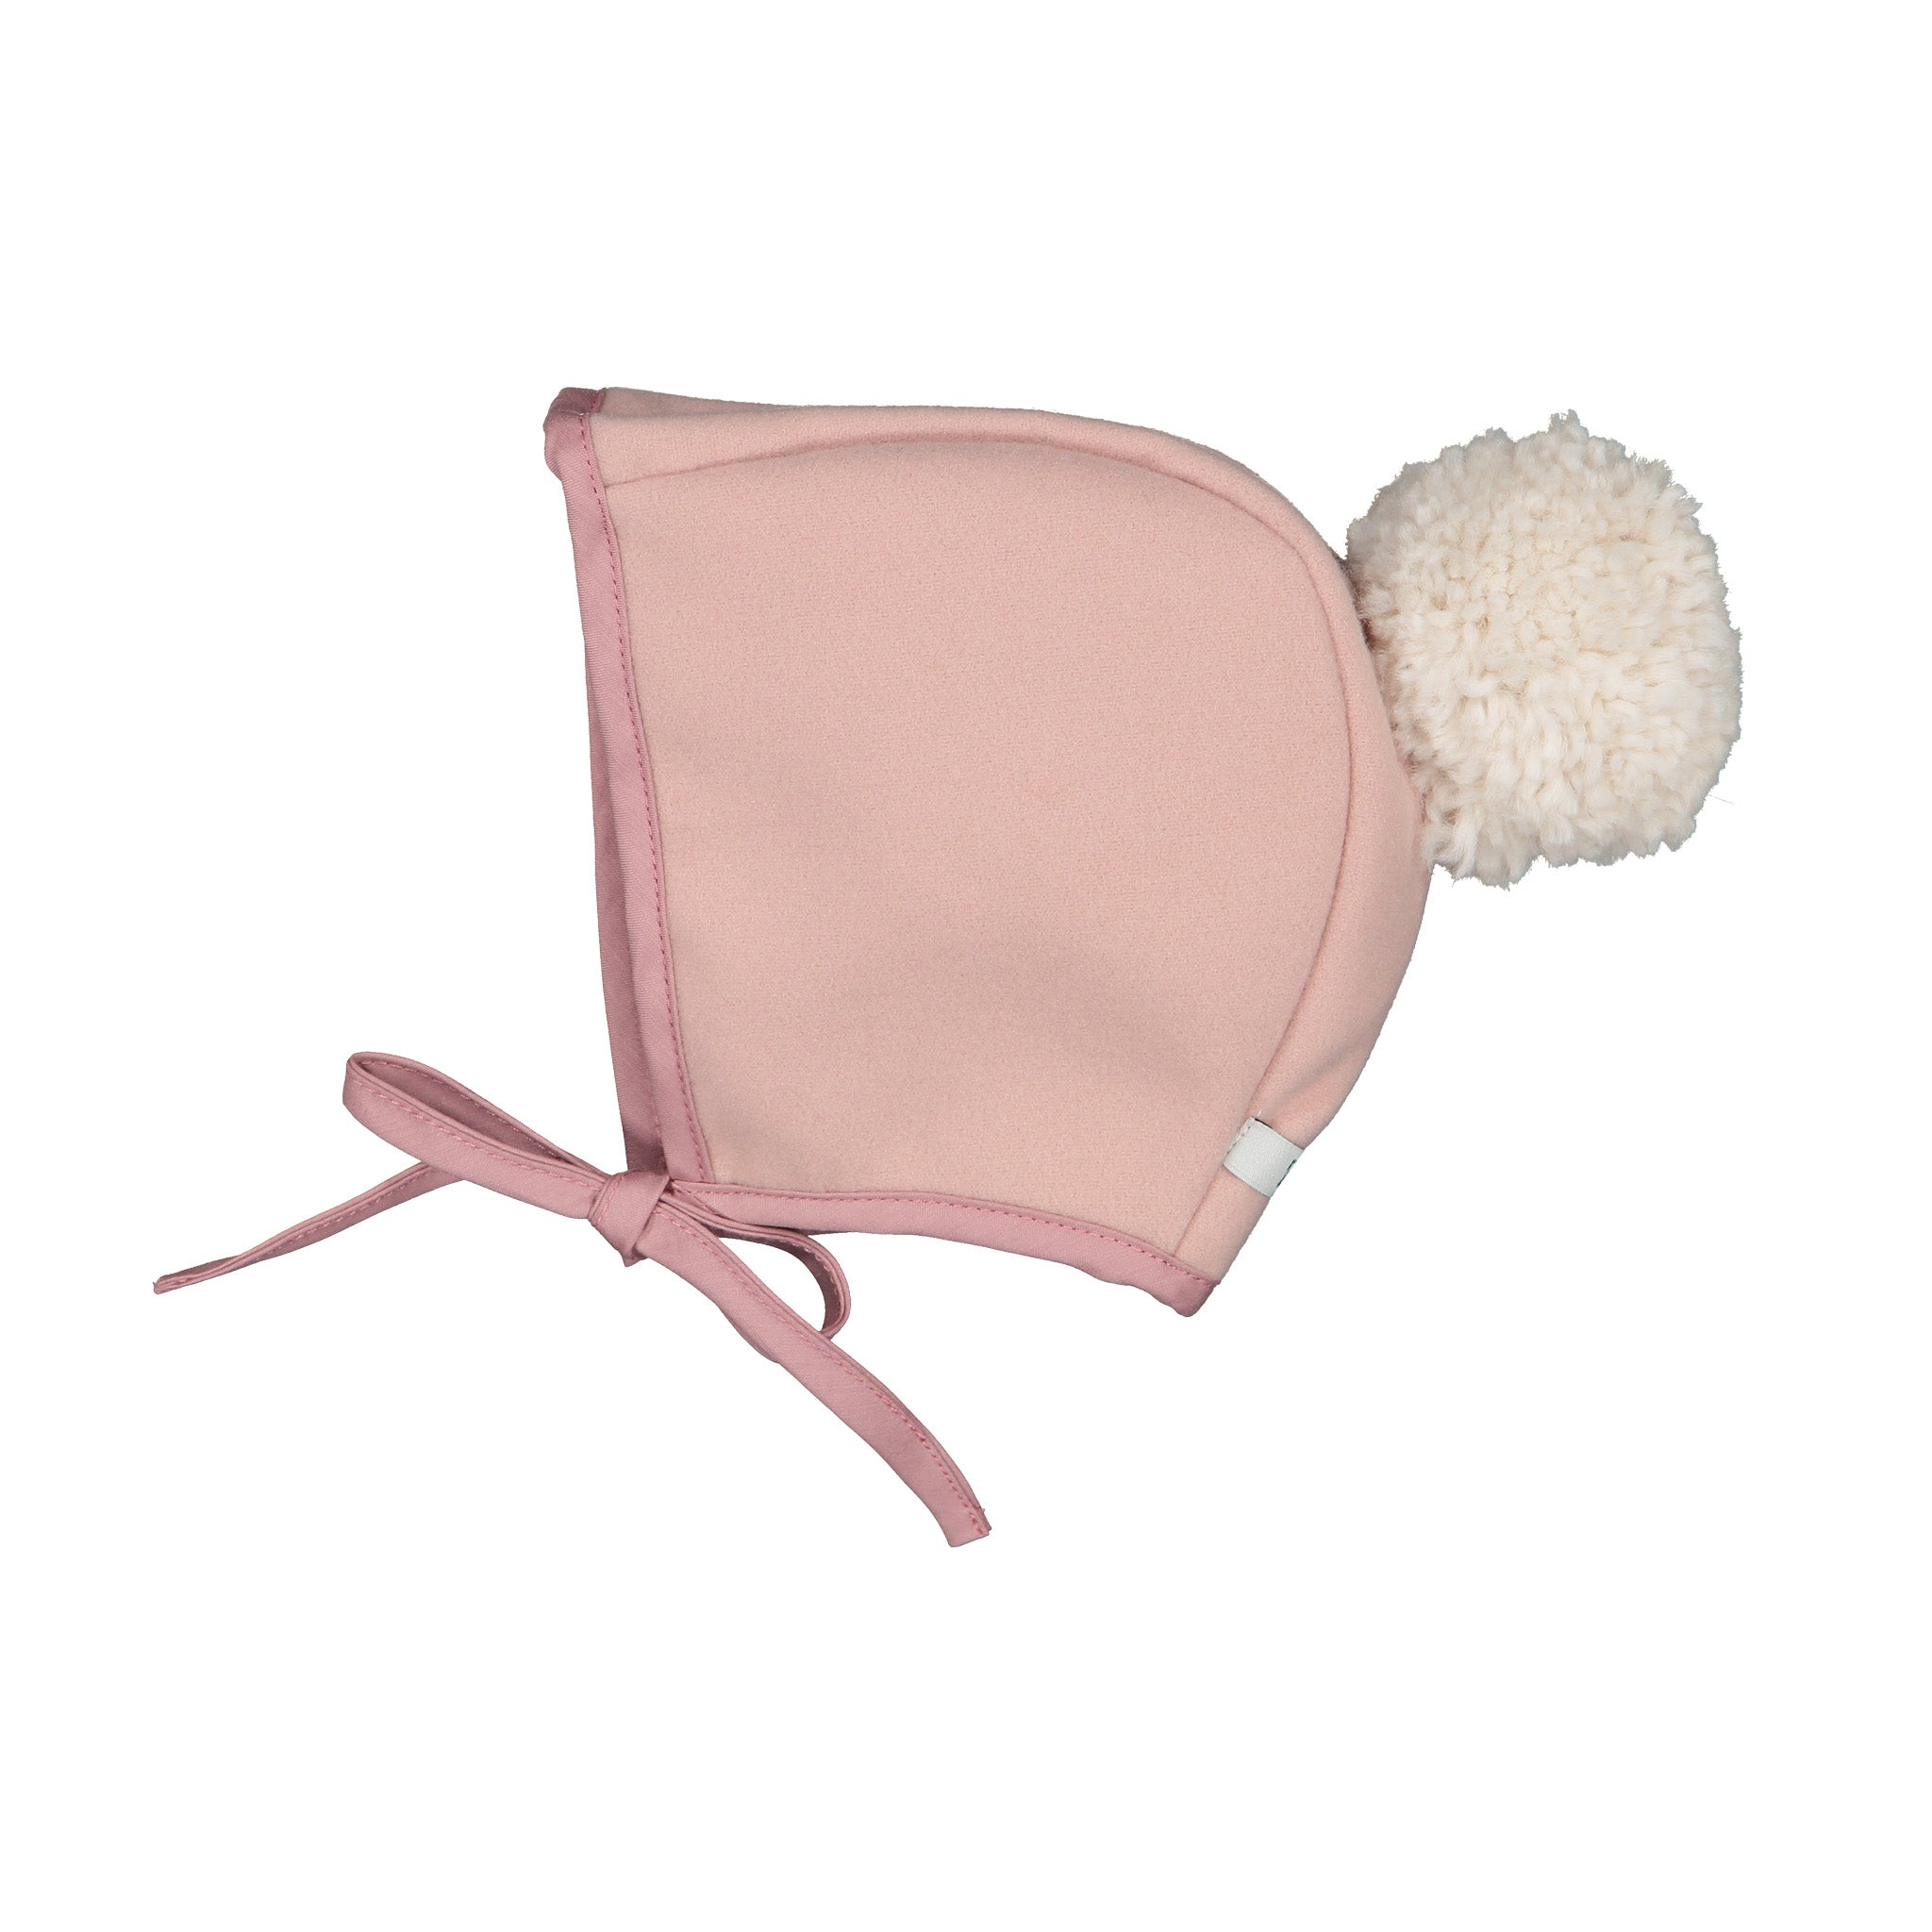 Winter Bonnet Blush Ivory Pom Pom/